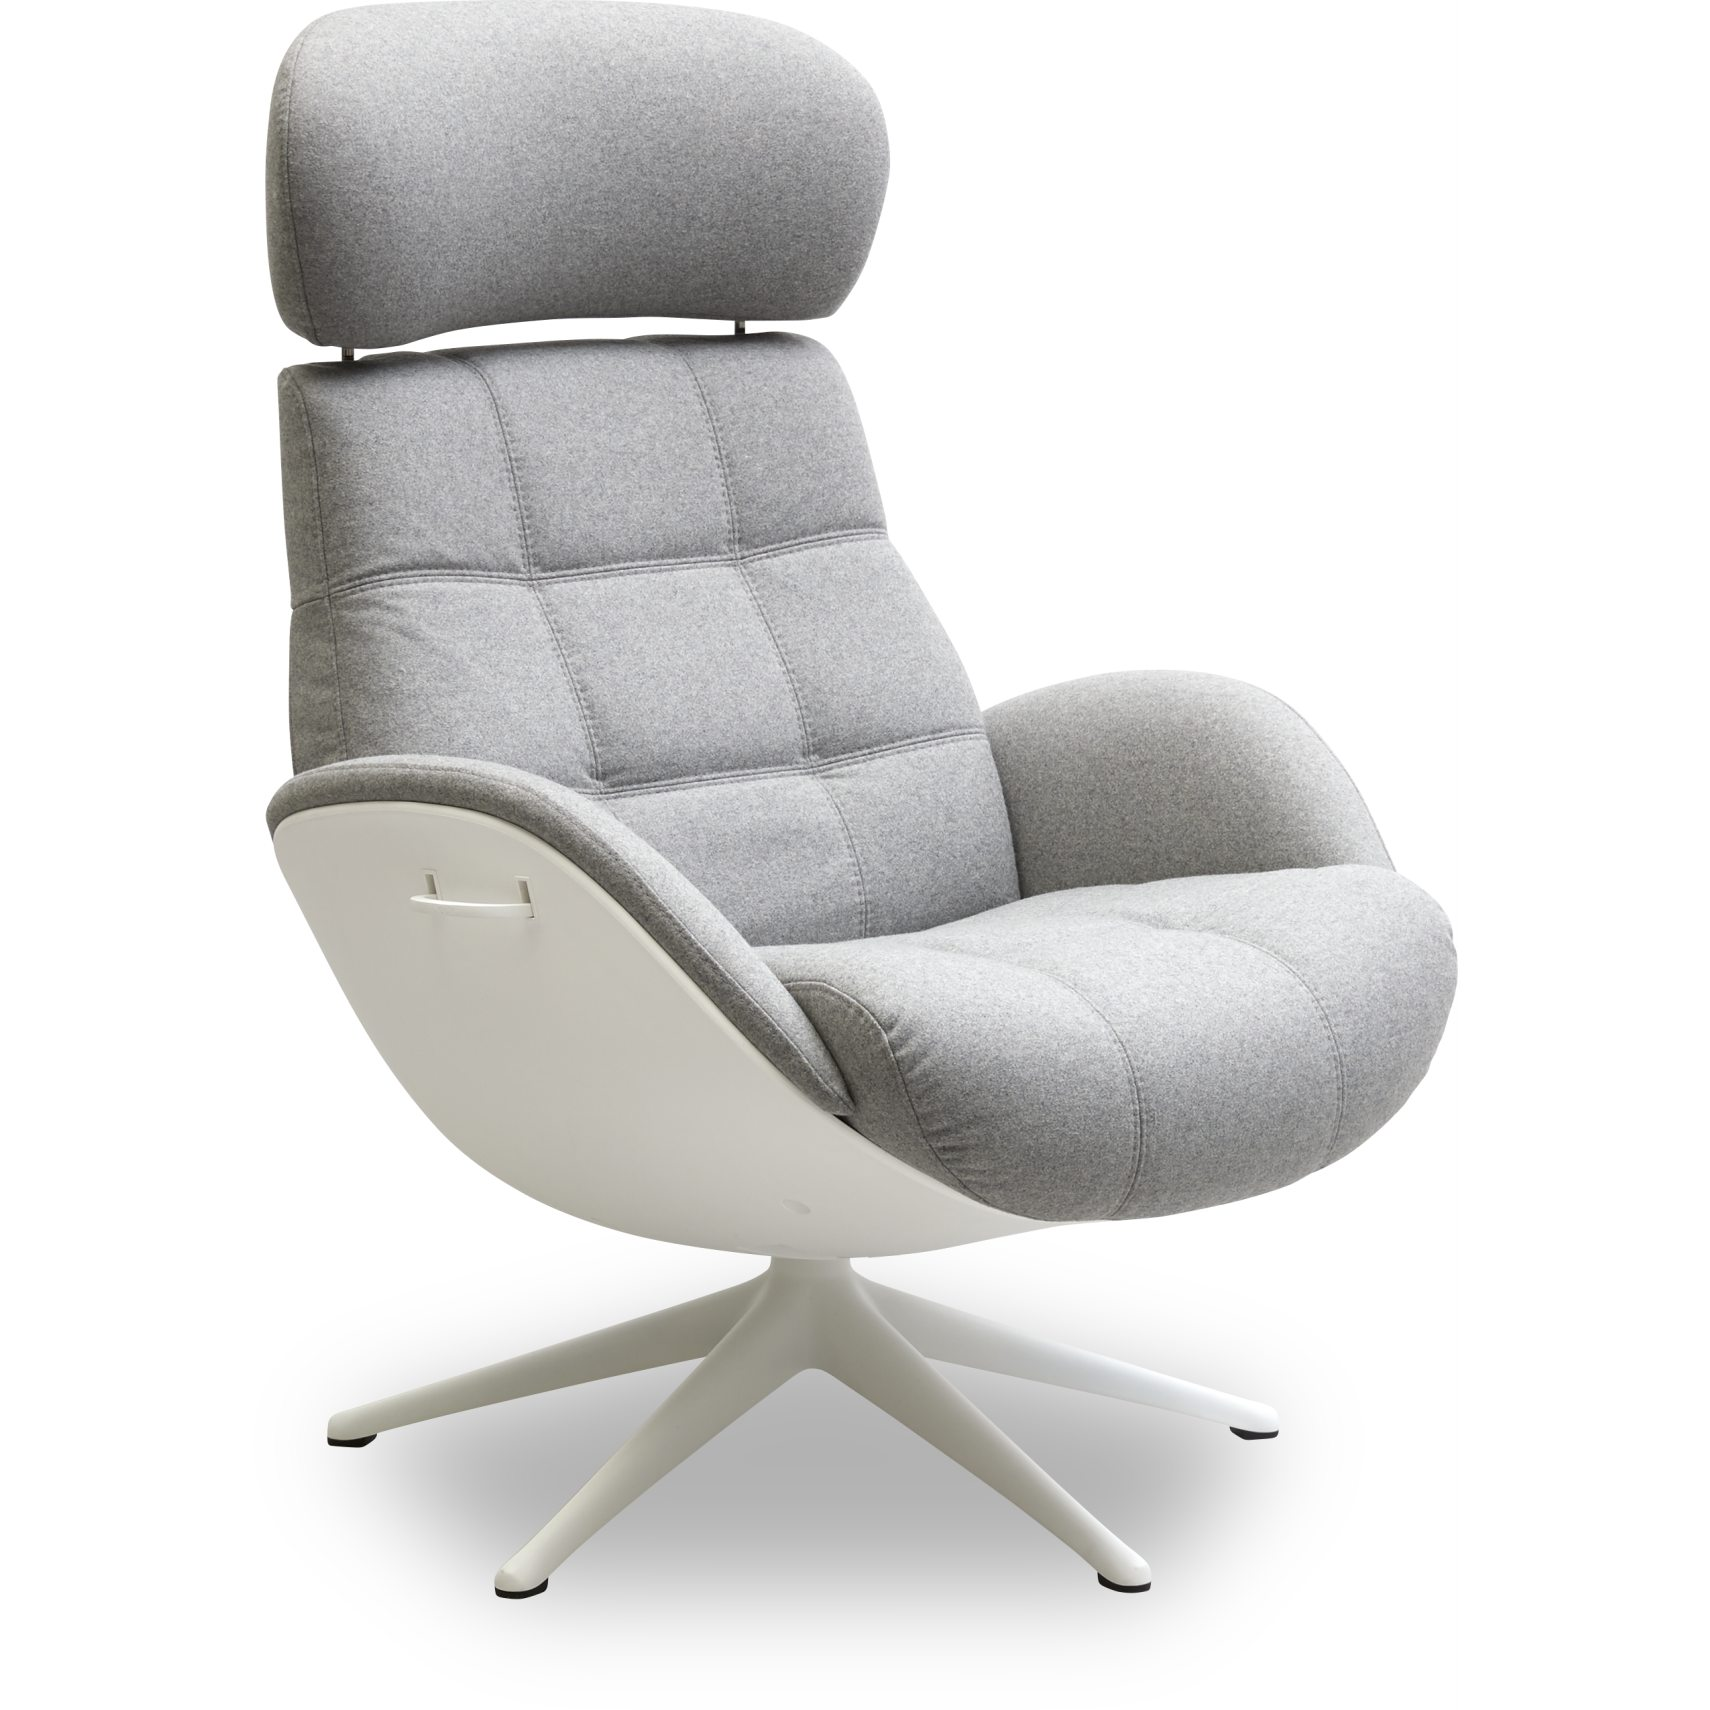 FLEXLUX® Chester Fåtölj - Lana wool 1523 light grey tyg, skal i Winter White-komposit och sockel i vitlackerad aluminium